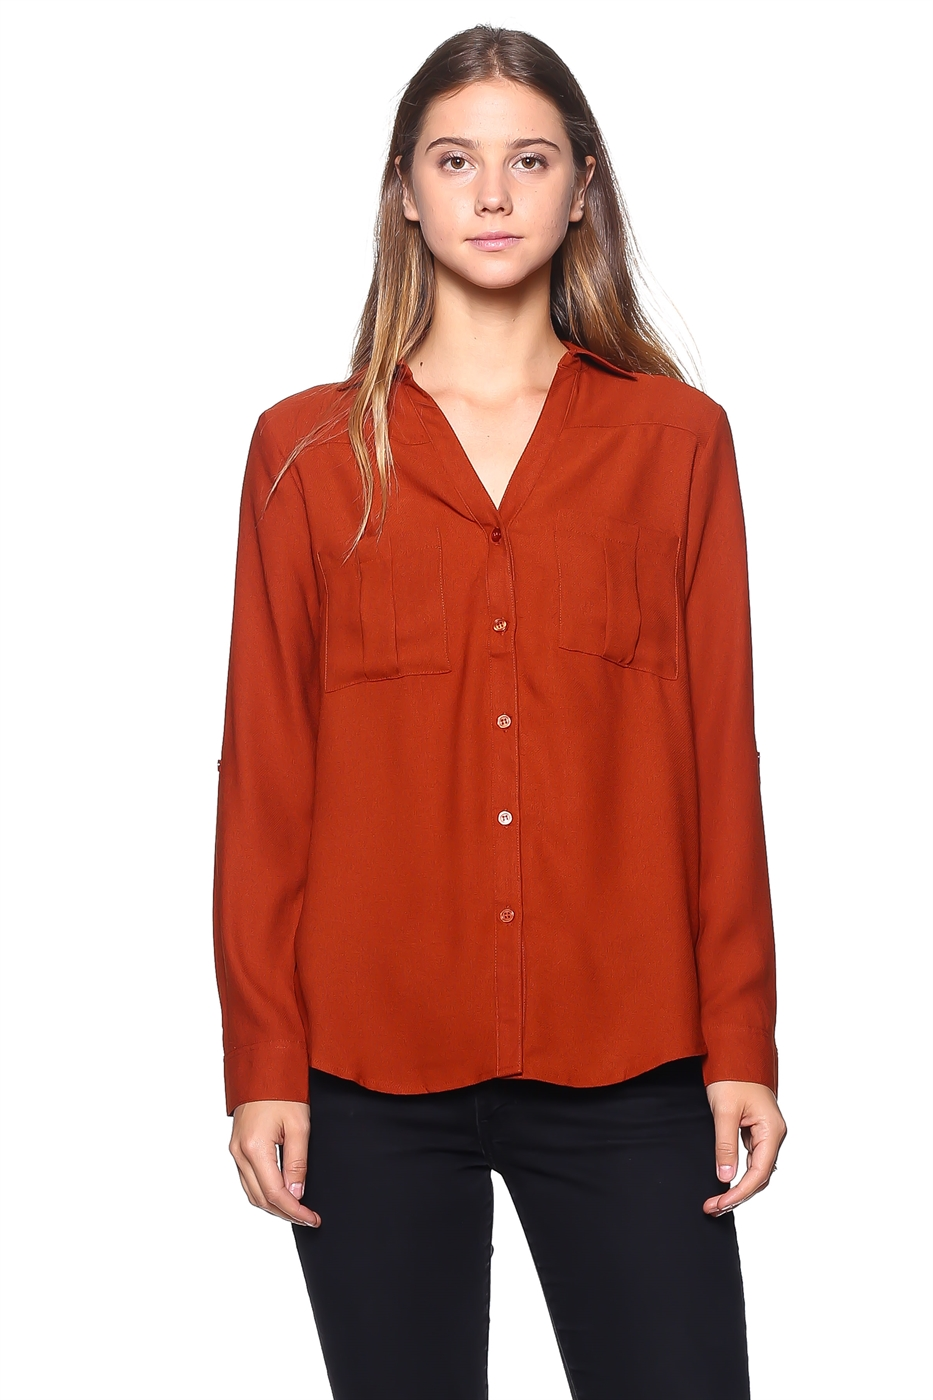 Collared Button Down Blouse - orangeshine.com